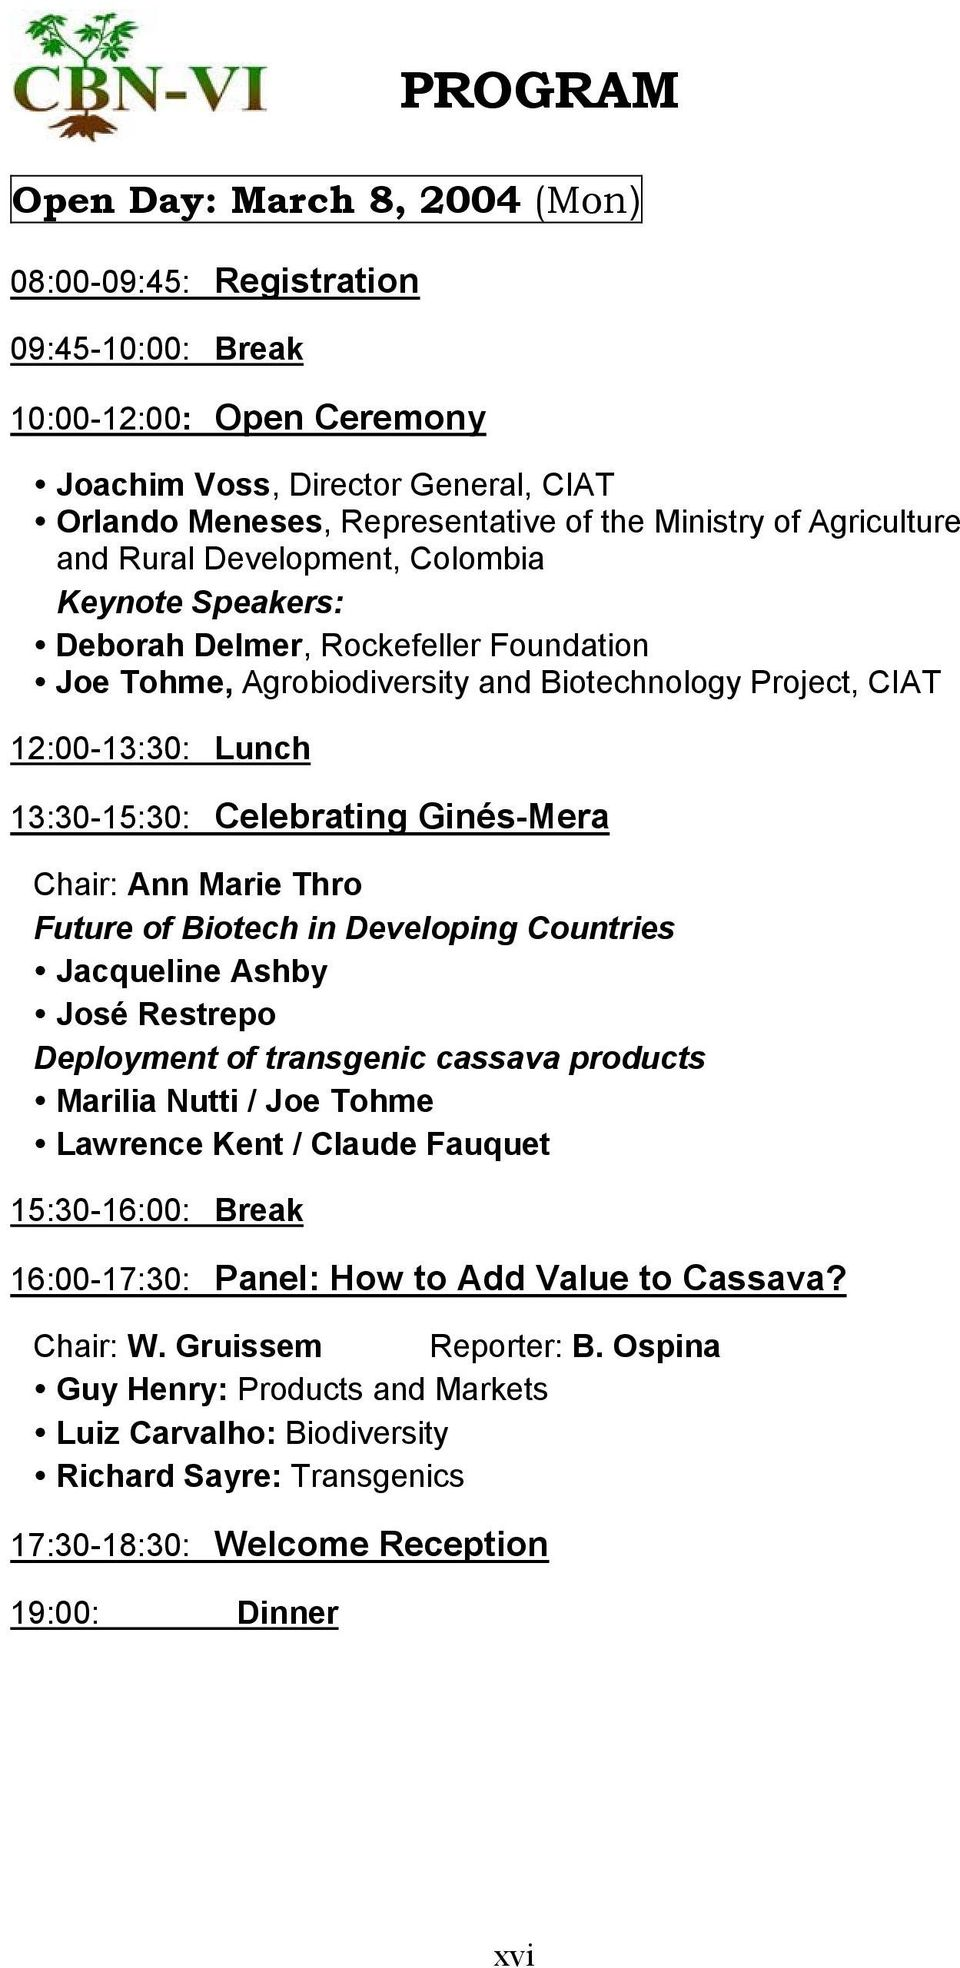 Celebrating Ginés-Mera Chair: Ann Marie Thro Future of Biotech in Developing Countries Jacqueline Ashby José Restrepo Deployment of transgenic cassava products Marilia Nutti / Joe Tohme Lawrence Kent